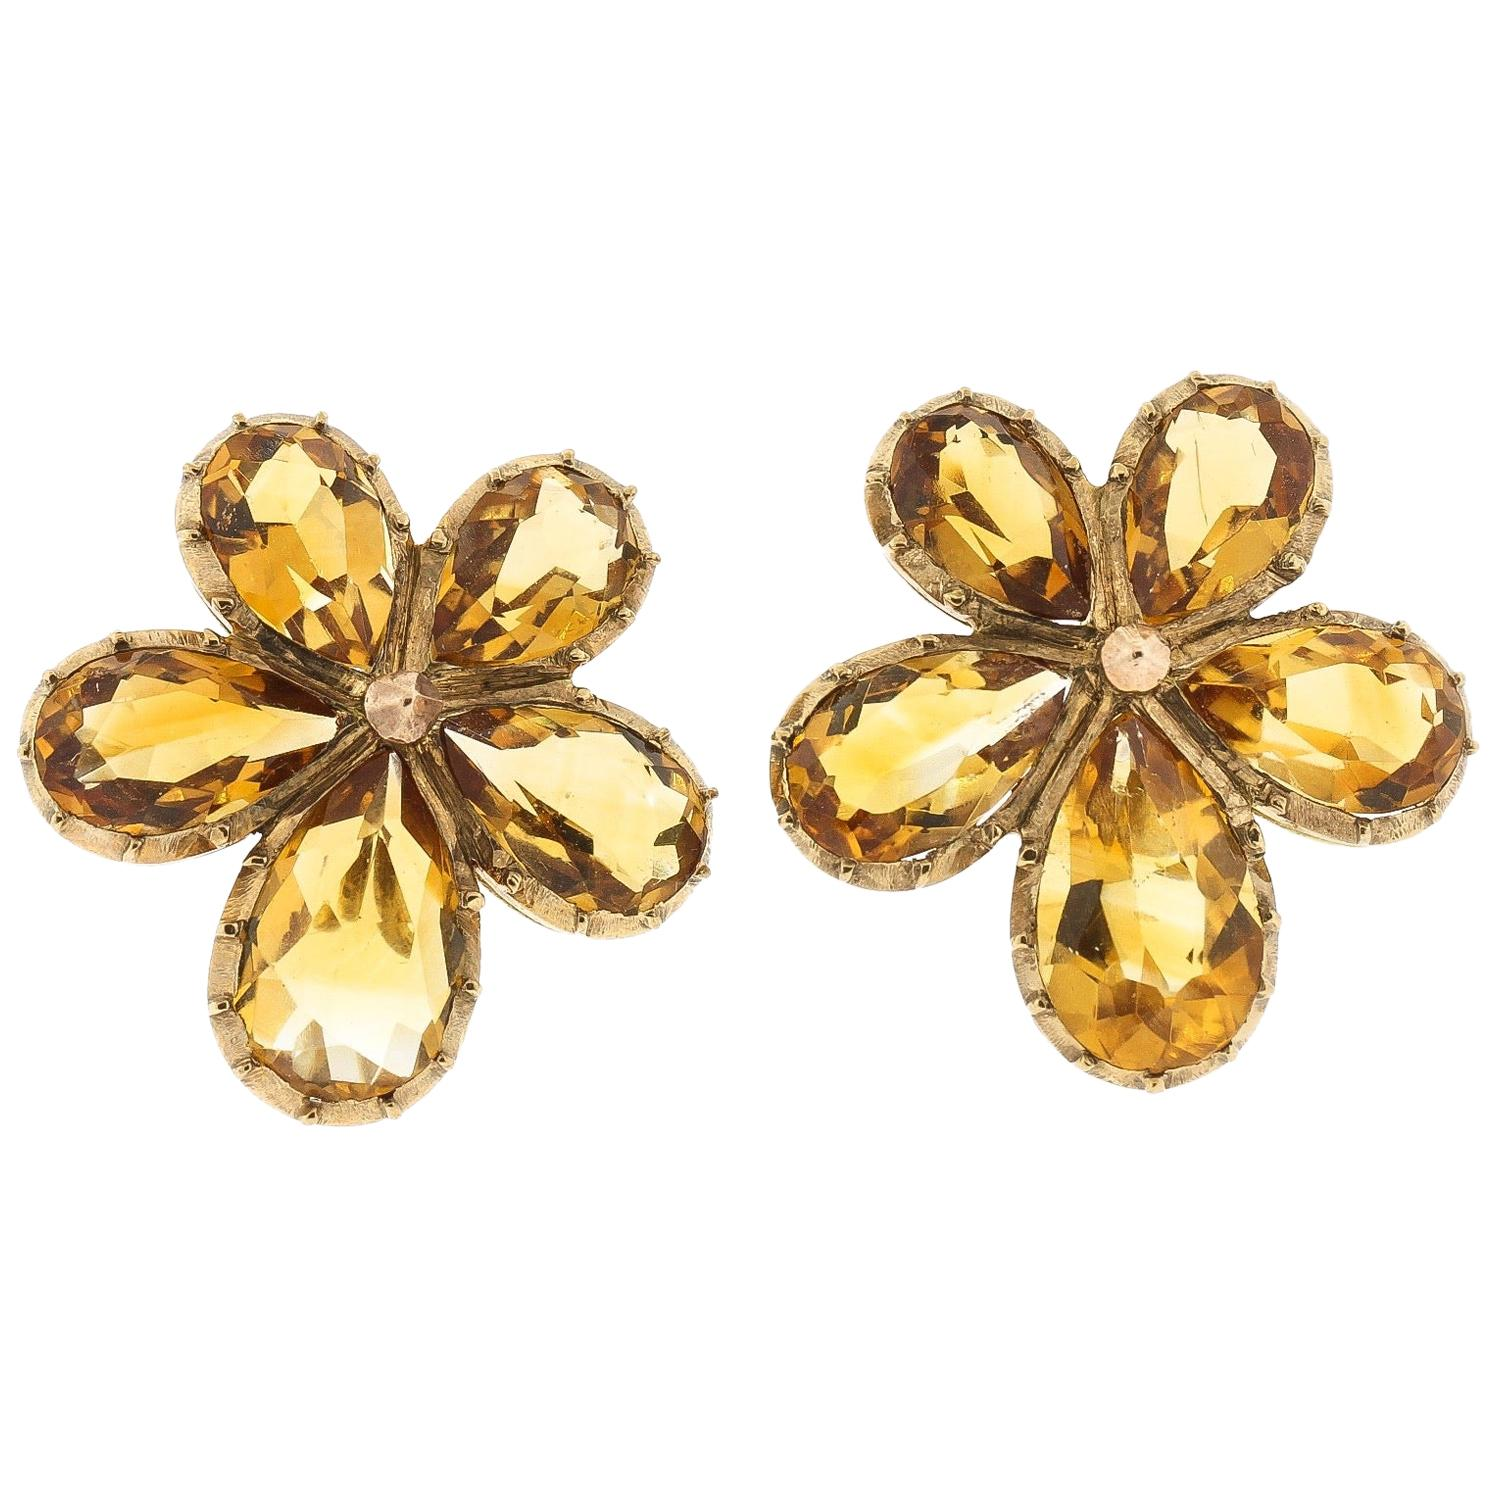 Antique Victorian Pear Shaped Citrine 9 Karat Gold Pansy Earrings